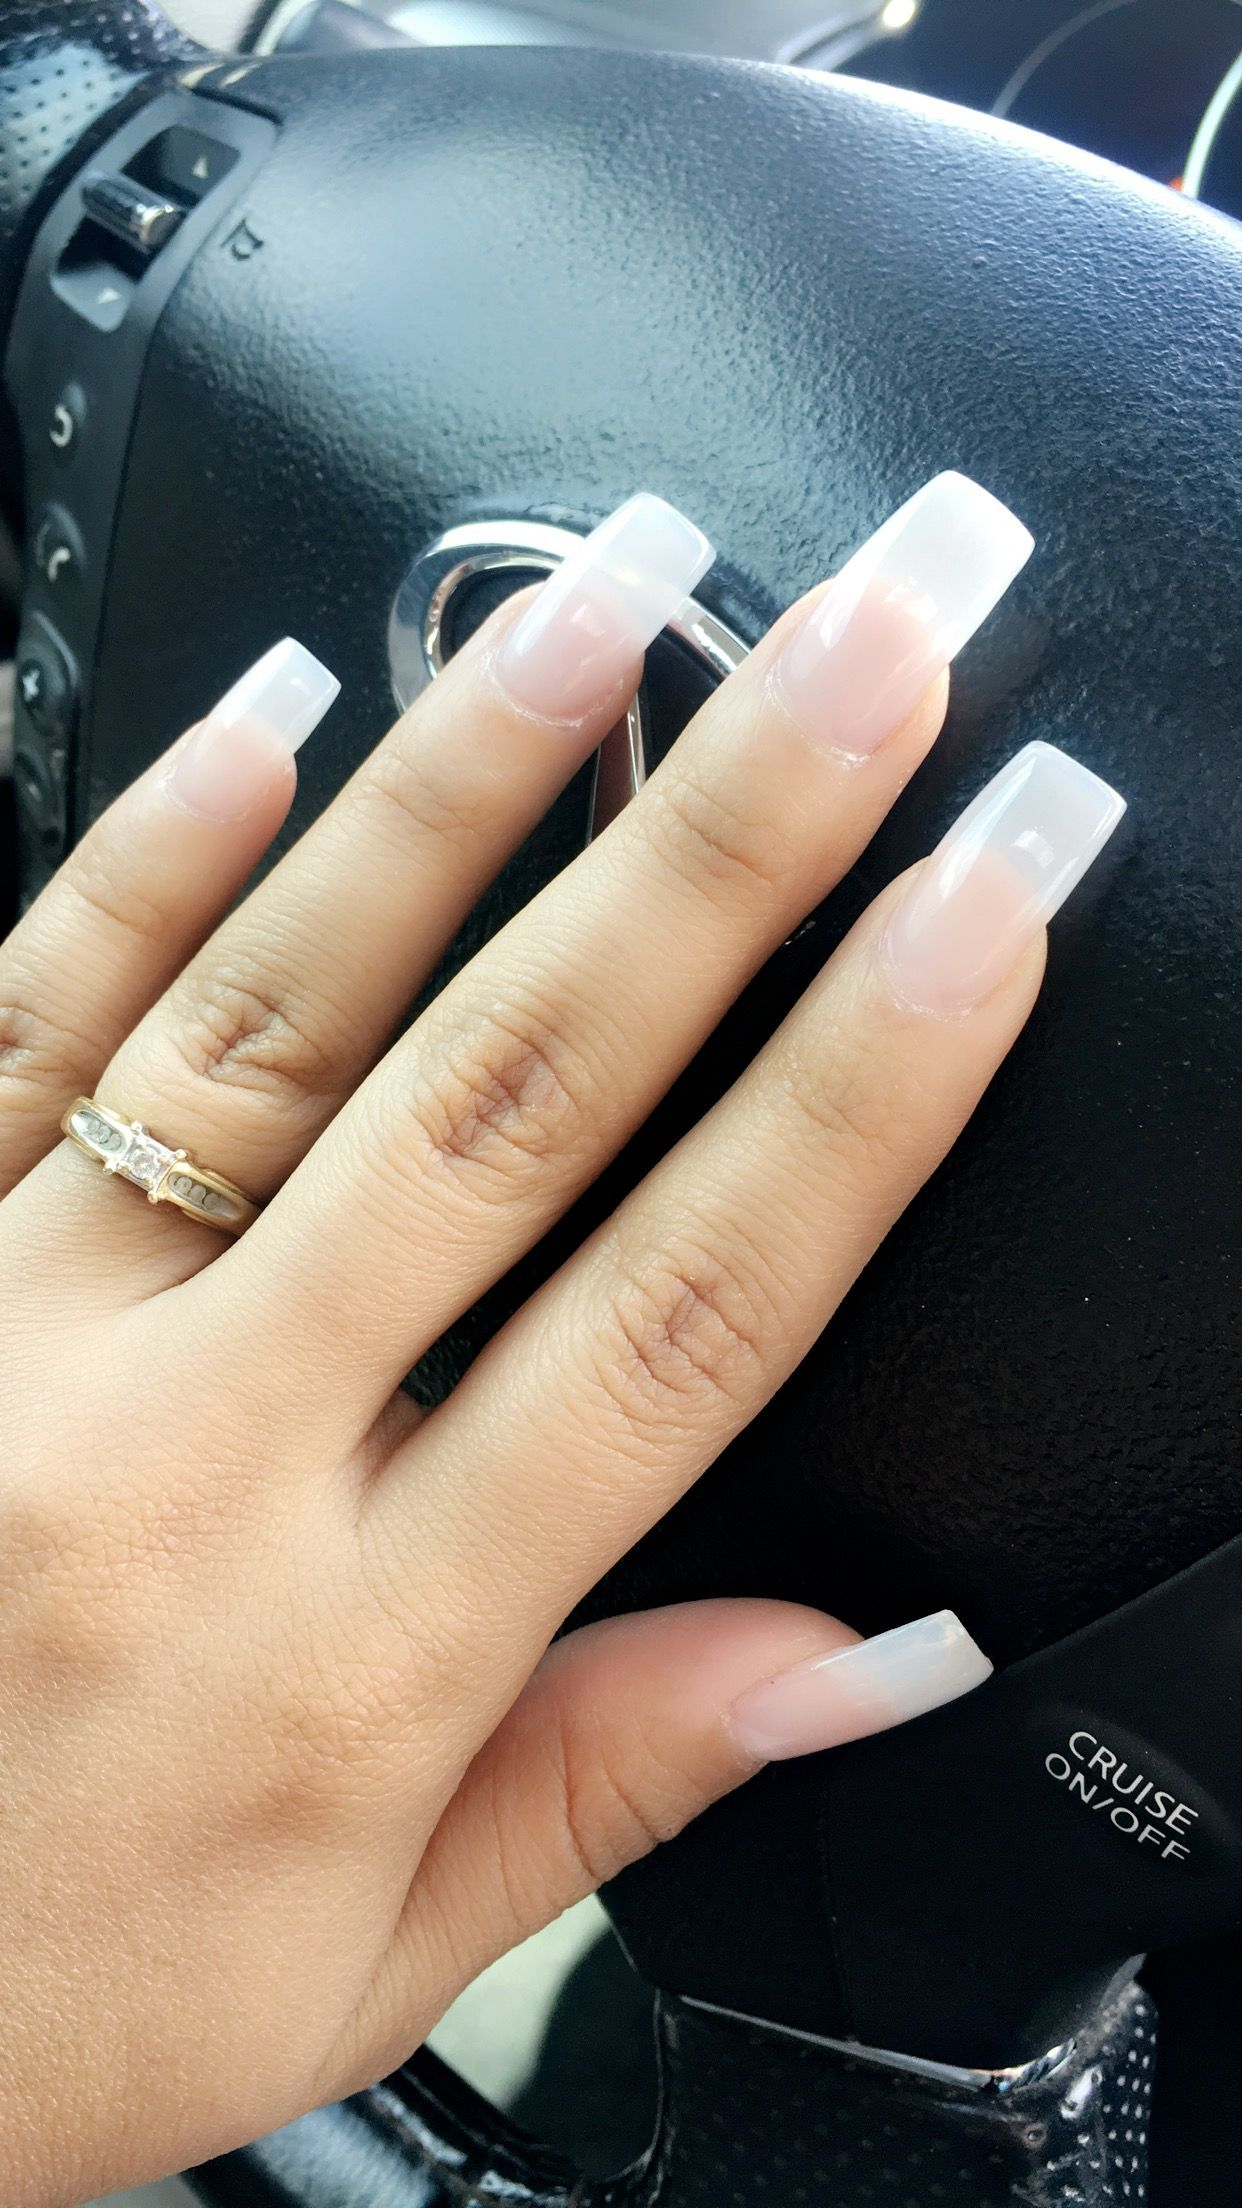 Natural Looking Nails In Love With Them Acrylic Square Shape Clear Powder And Gel